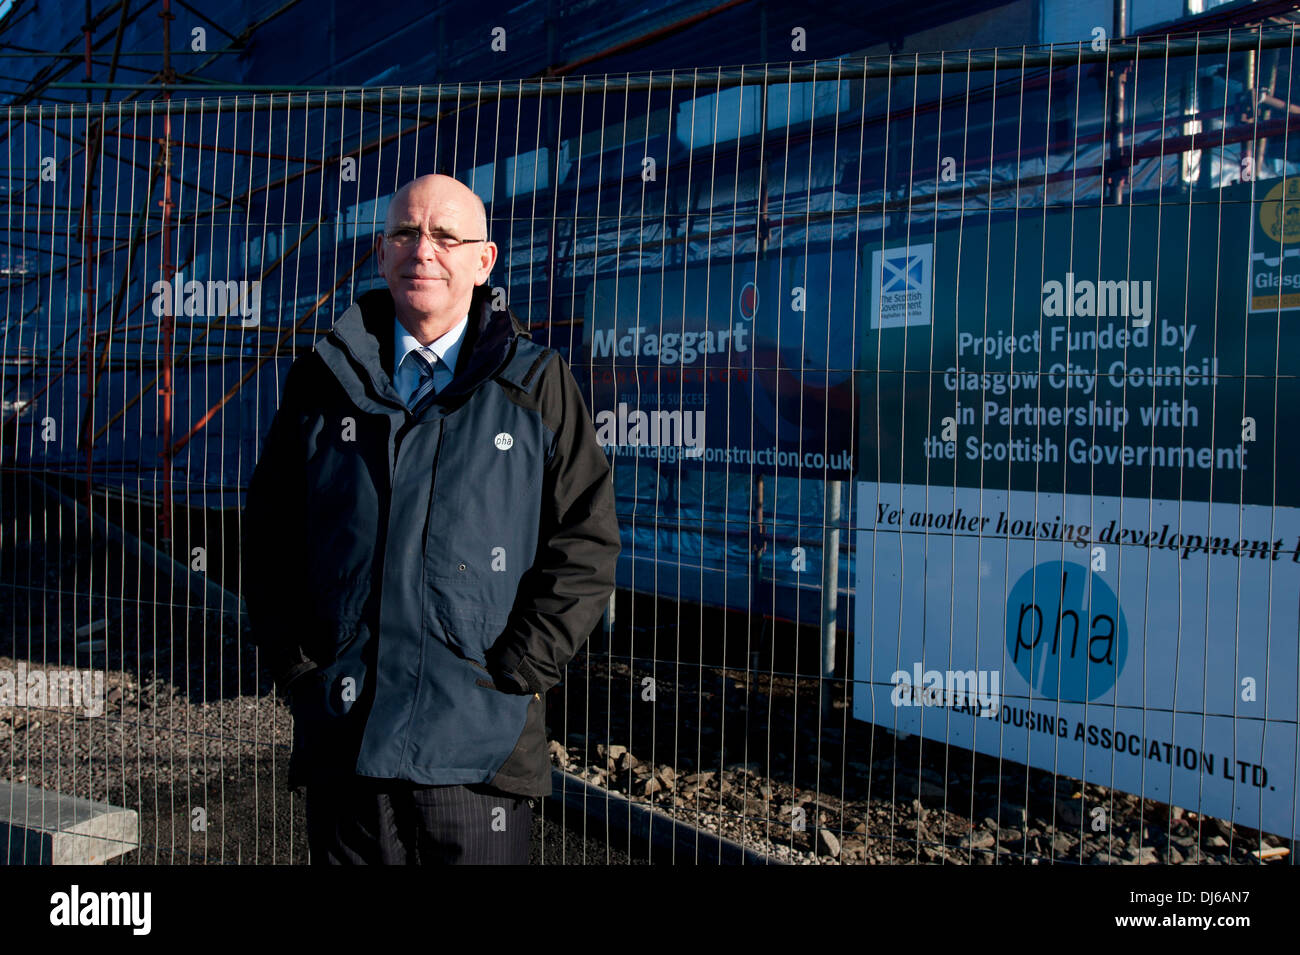 Jim Strang, Chief Executive of Parkhead Housing Association, is photographed in Parkhead Glasgow - Stock Image